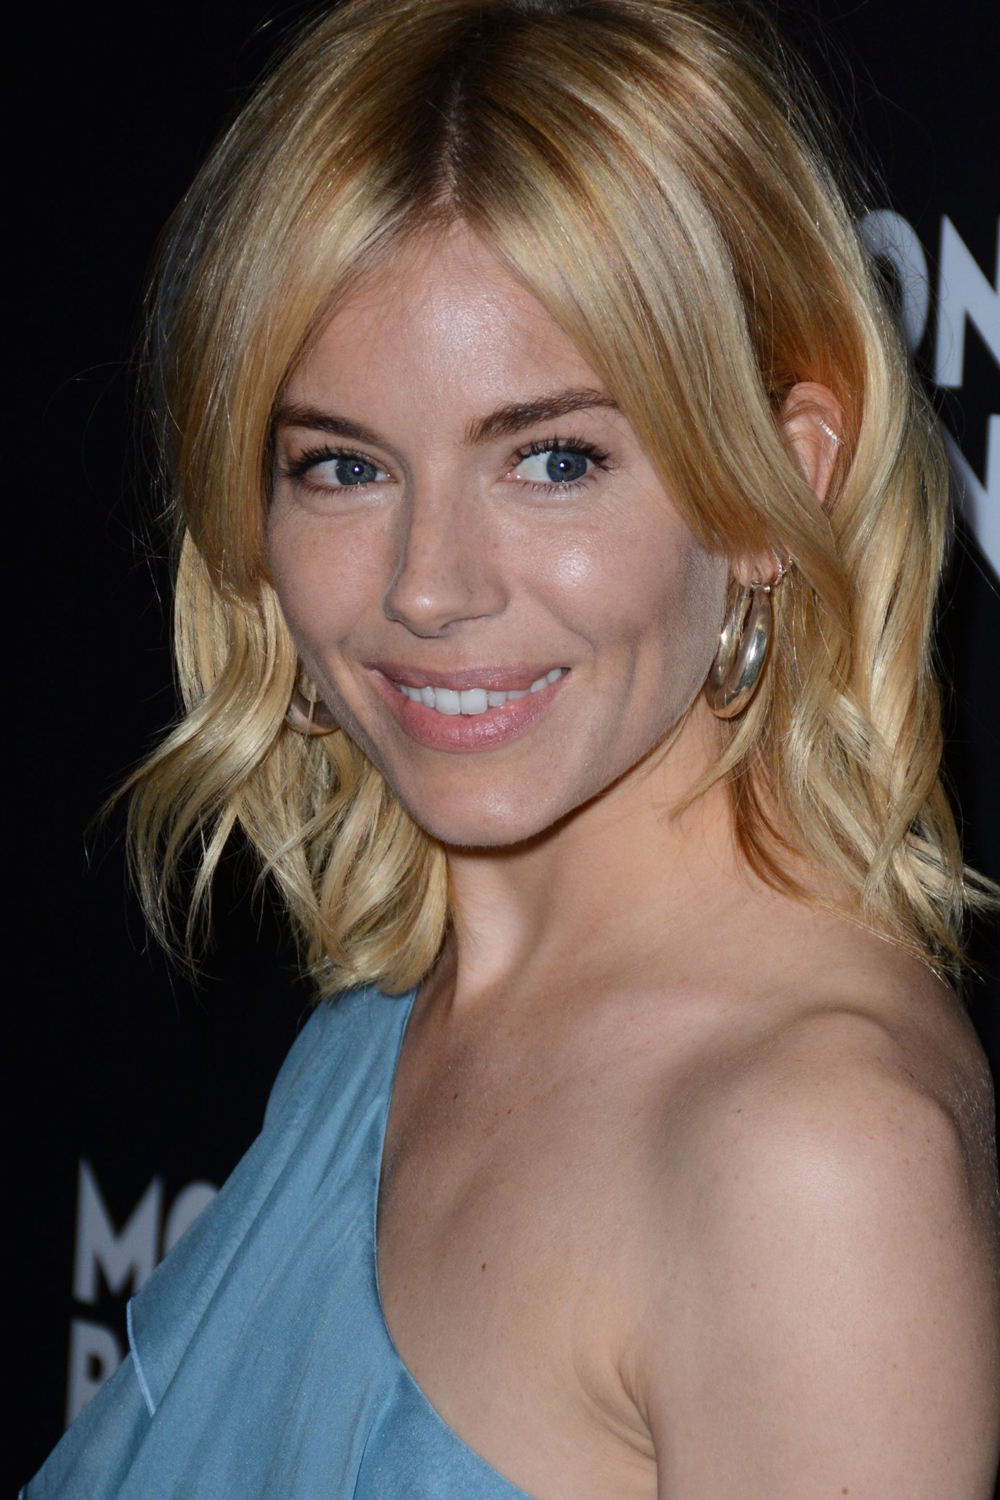 Pleasing Blonde Hairstyles The Marie Claire Guide To Getting It Just Right Short Hairstyles Gunalazisus